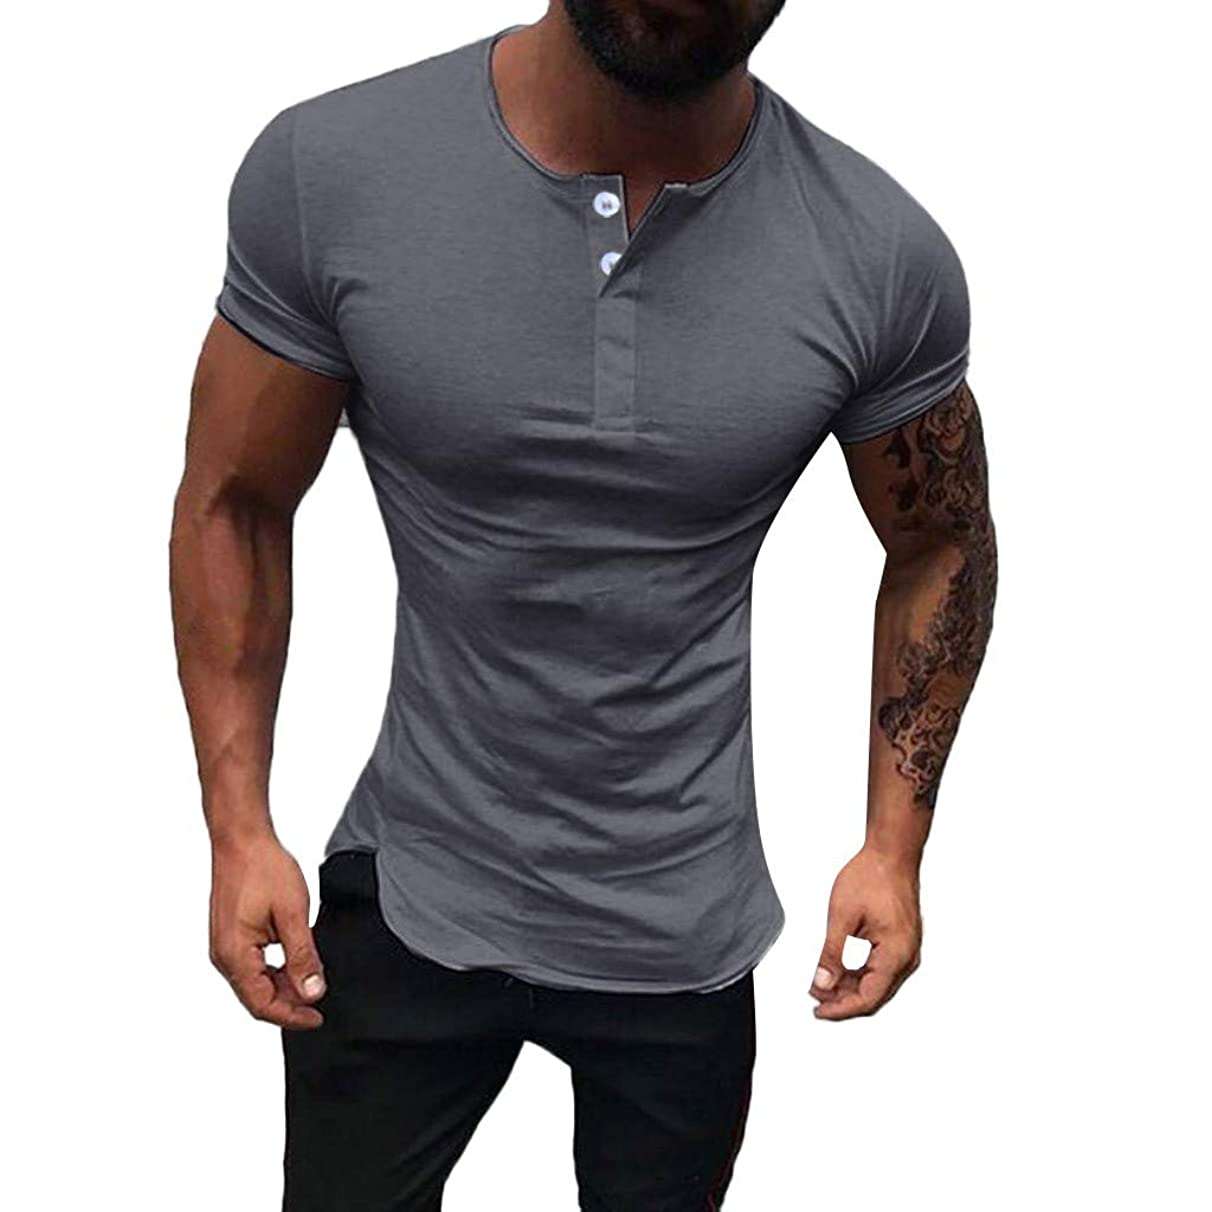 Men's Fashion Round Neck Slim Stretch Short Sleeve,MmNote Gym Muscle Fitness Sports Moisture Wicking Performance T-Shirt